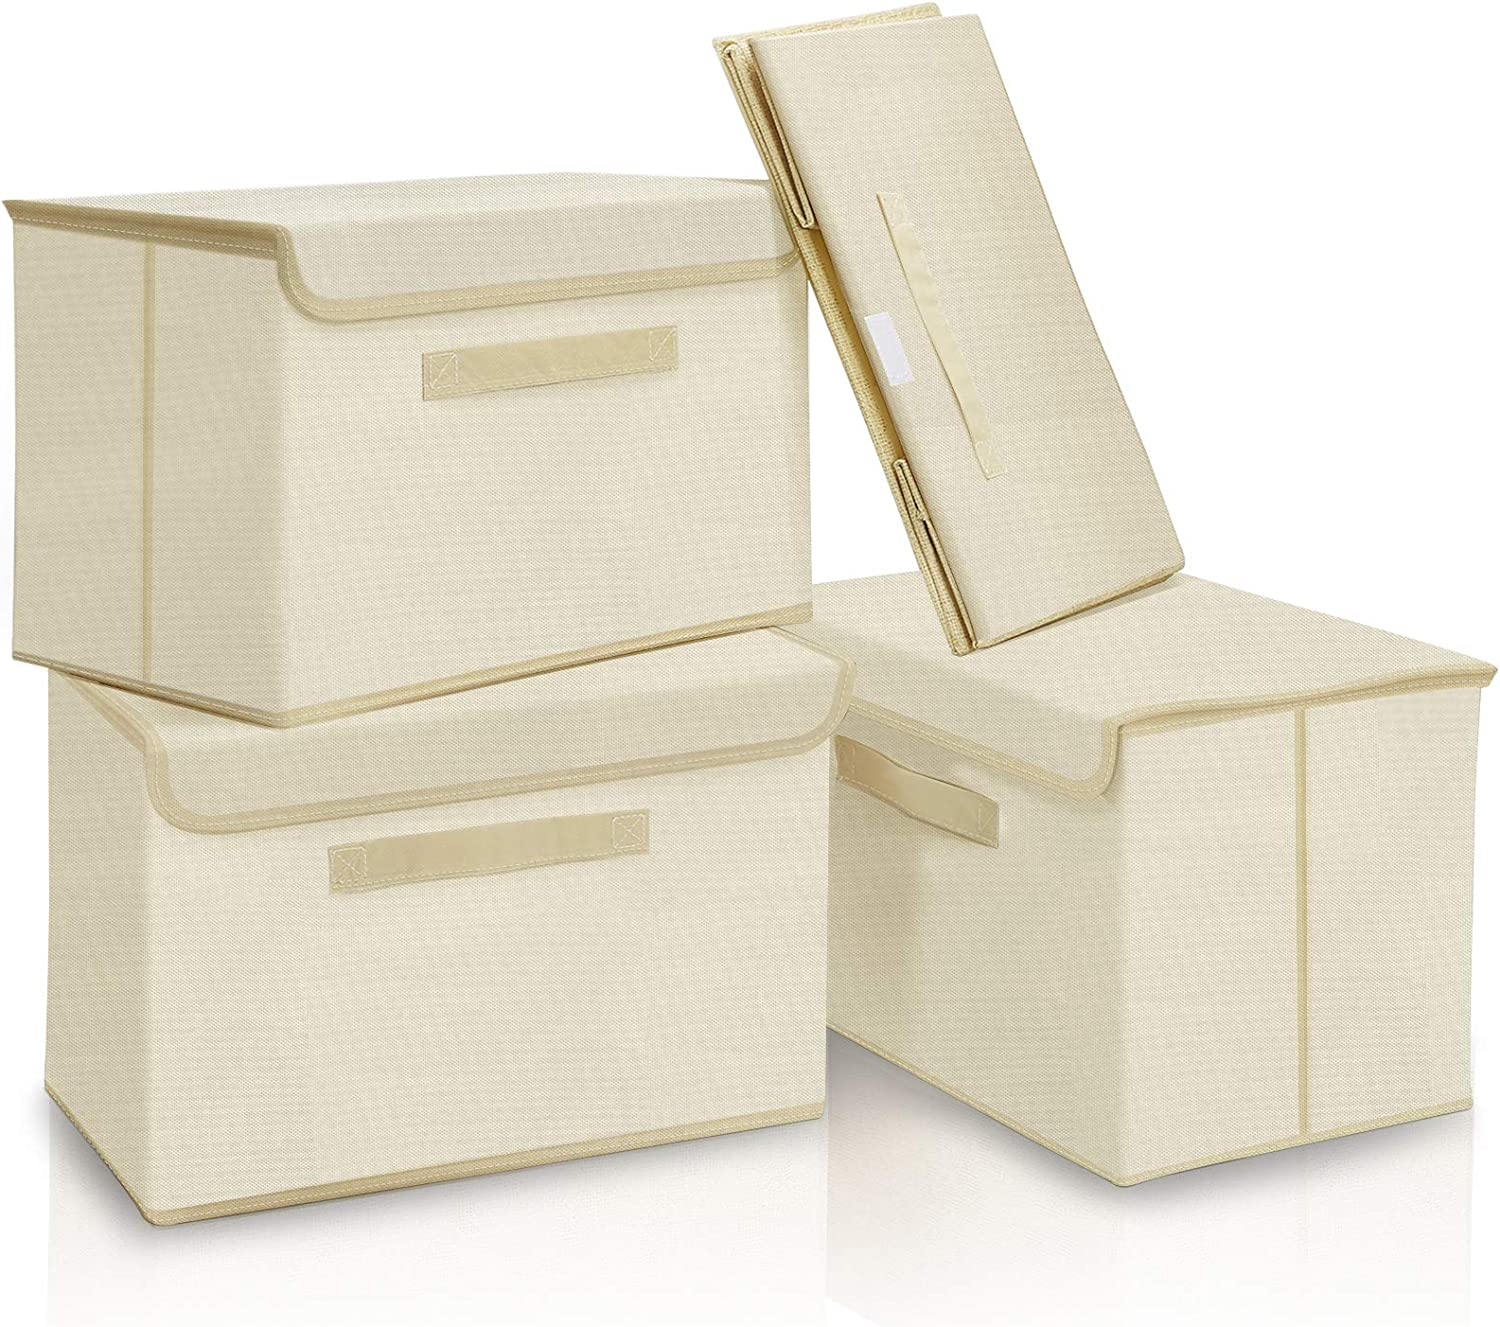 Erebus Large Storage Bins with Lid [4-Pack] Foldable Fabric Storage Box with Lid, Collapsible Storage Cube Organizer Containers Baskets with Cover for Home Bedroom Closet Nursery 15''x10''x10''